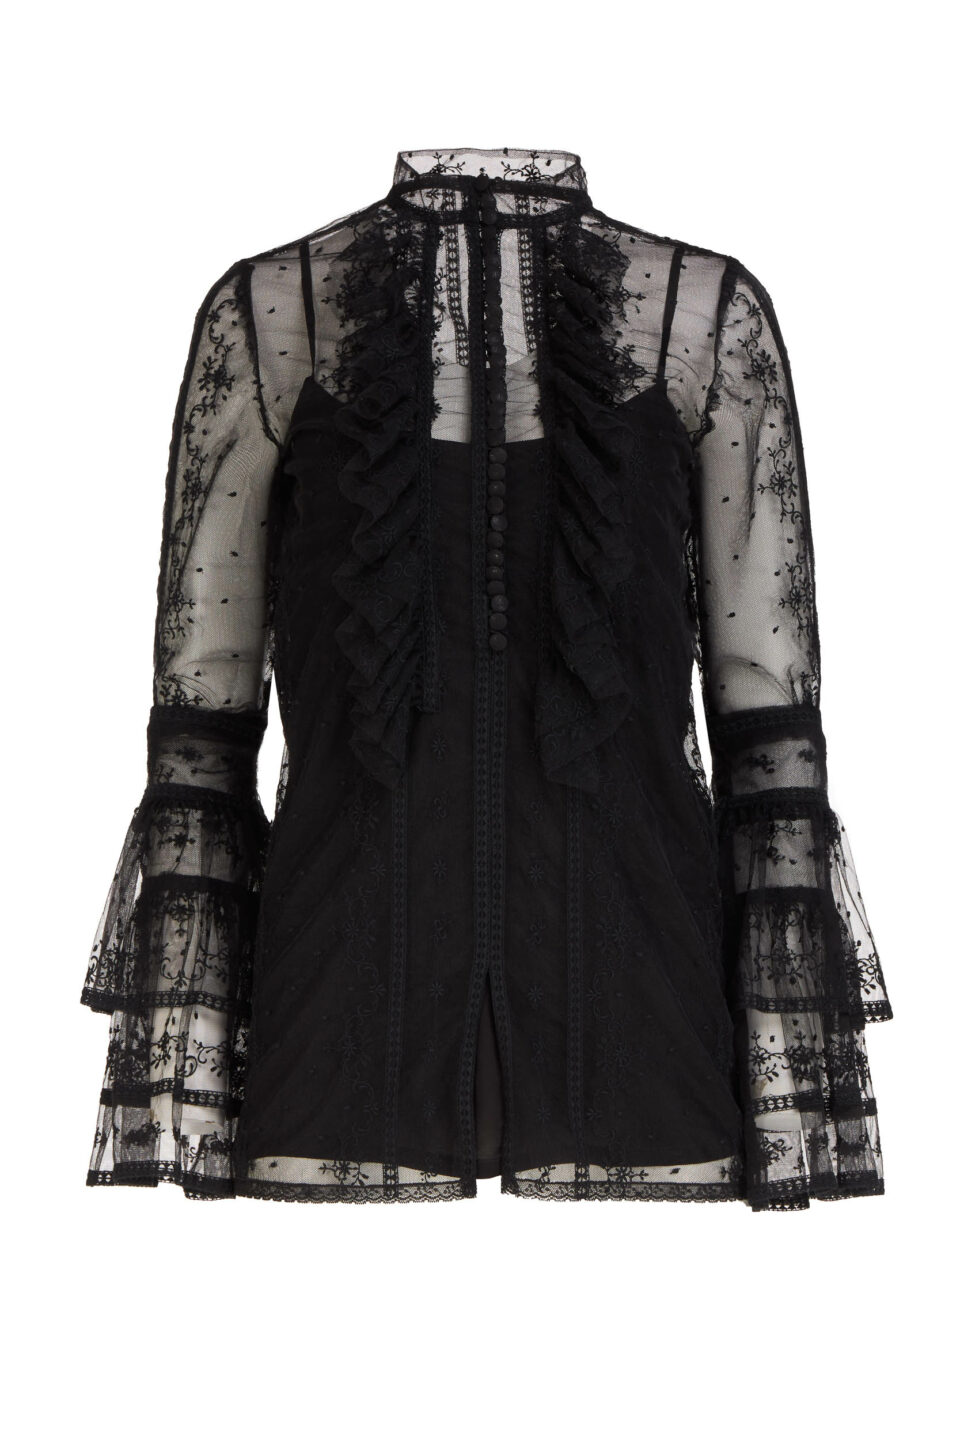 Scarlett FW2163 Black Embroidered French Tulle Buttoned Blouse with Layered Fluted Sleeves